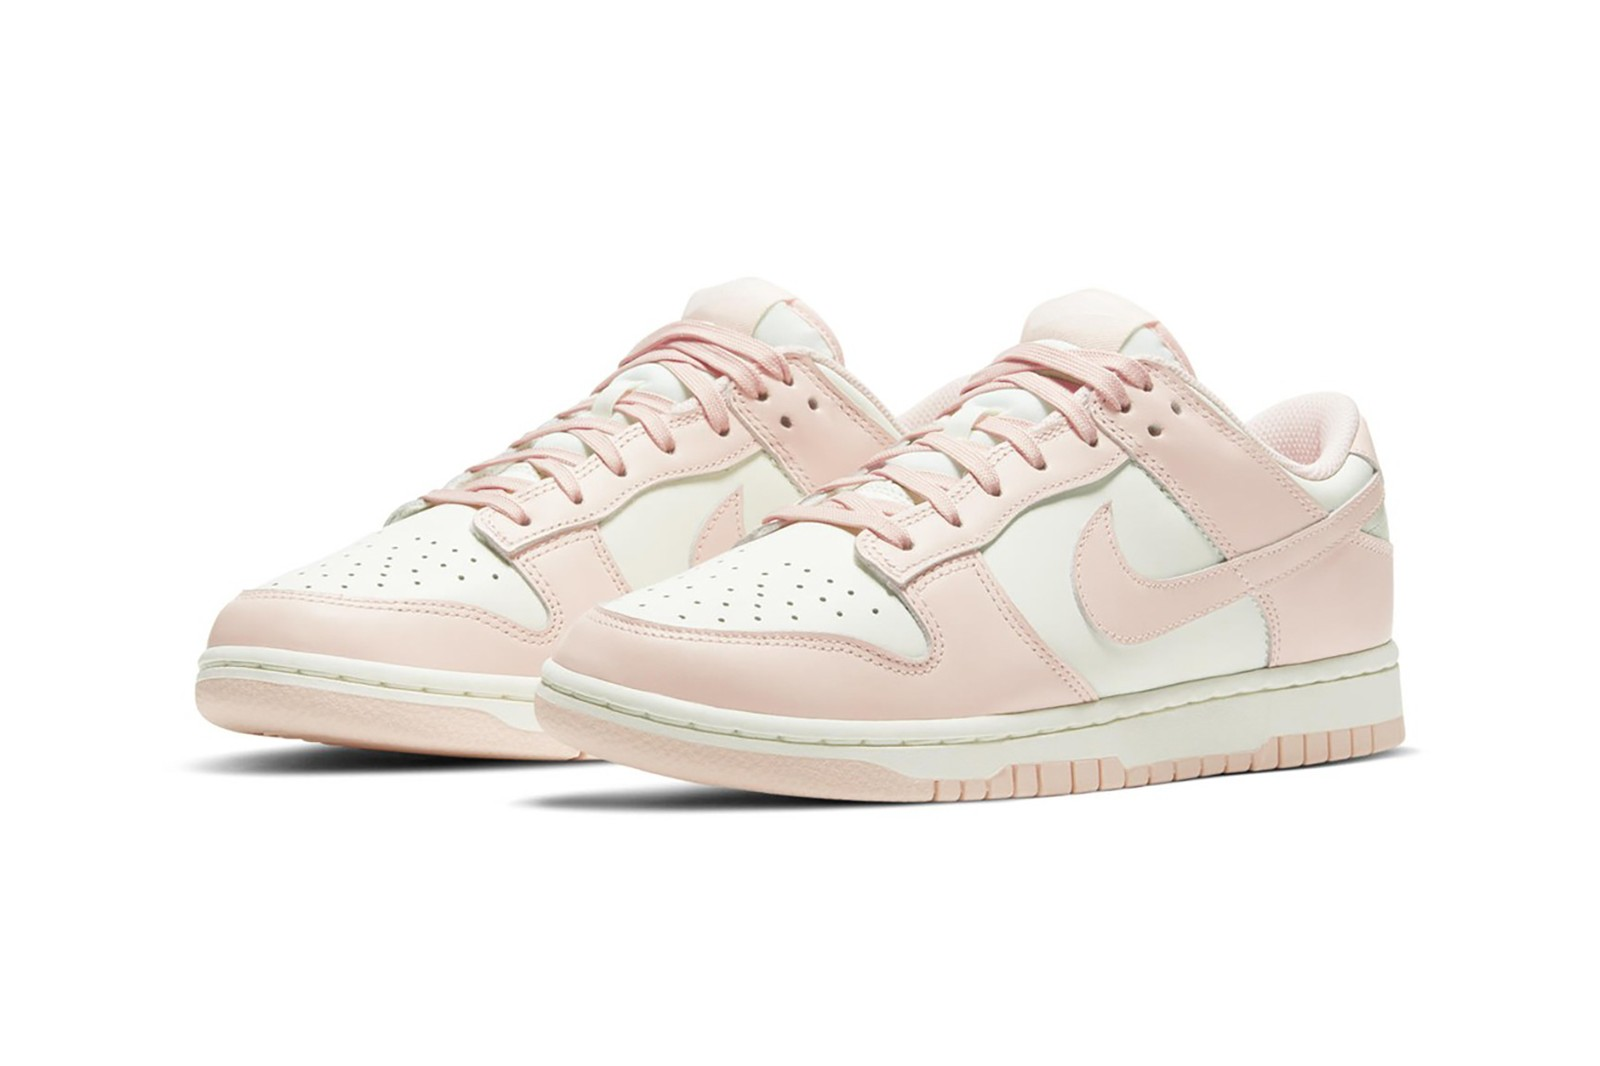 nike sportswear spring dunk low collection sneakers pastel pink black white checkered socks stocking sweater skirt jeans hoodie jacket chair